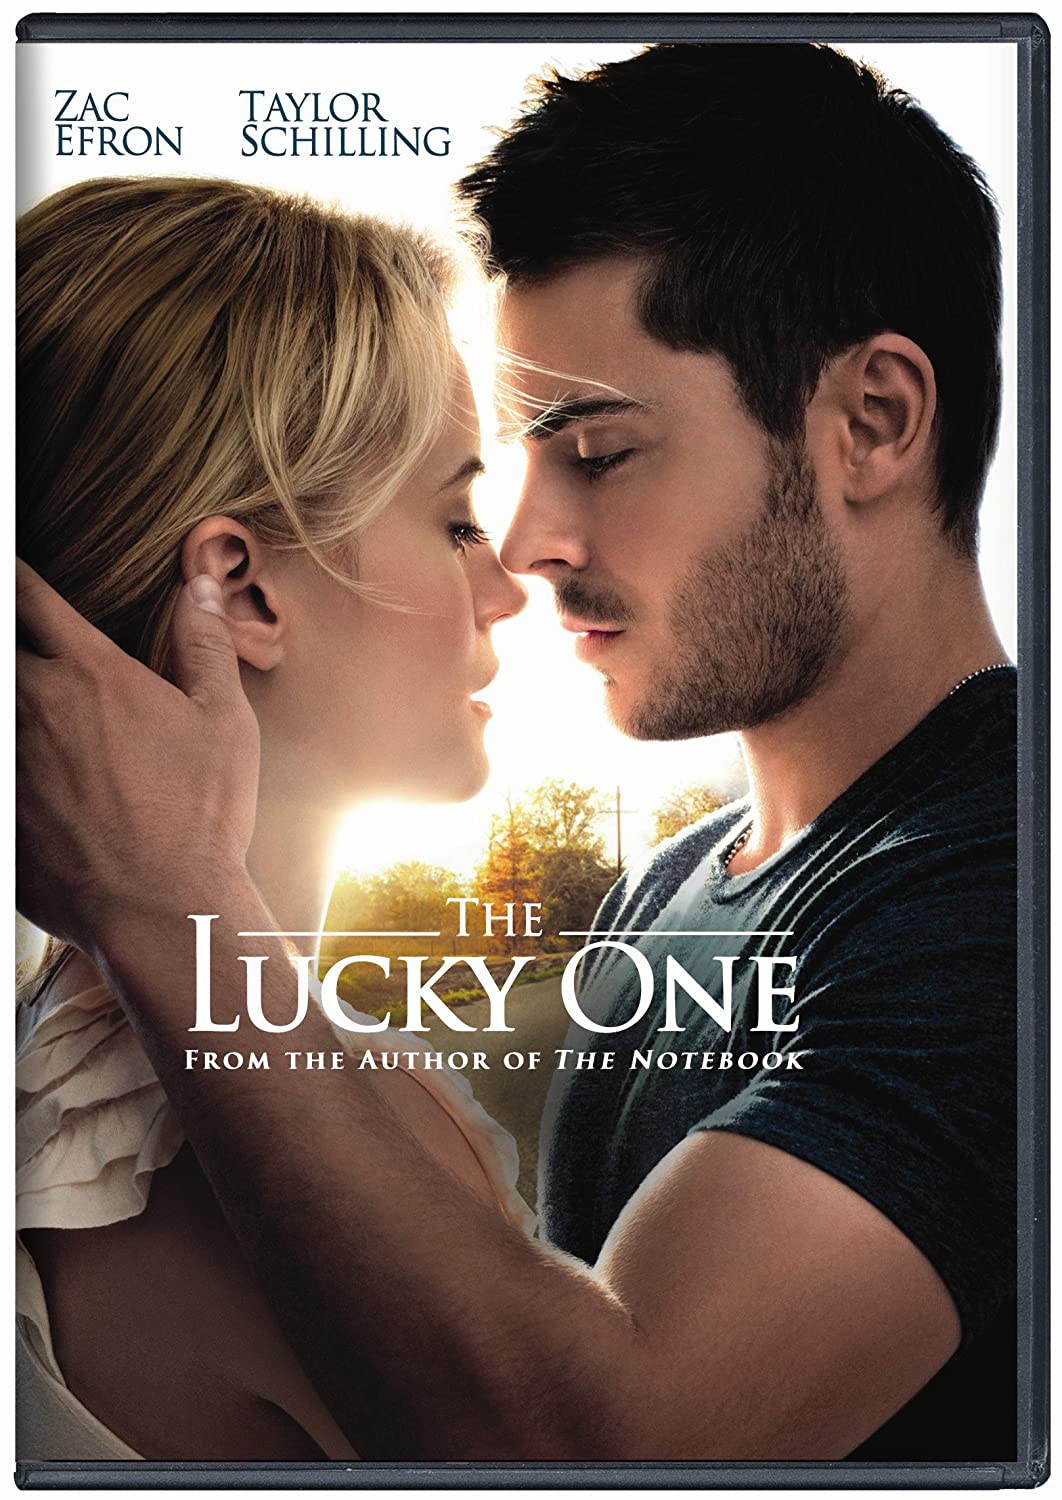 the lucky one dvd uv copy 2012 co uk zac efron the lucky one dvd uv copy 2012 co uk zac efron taylor schilling dvd blu ray